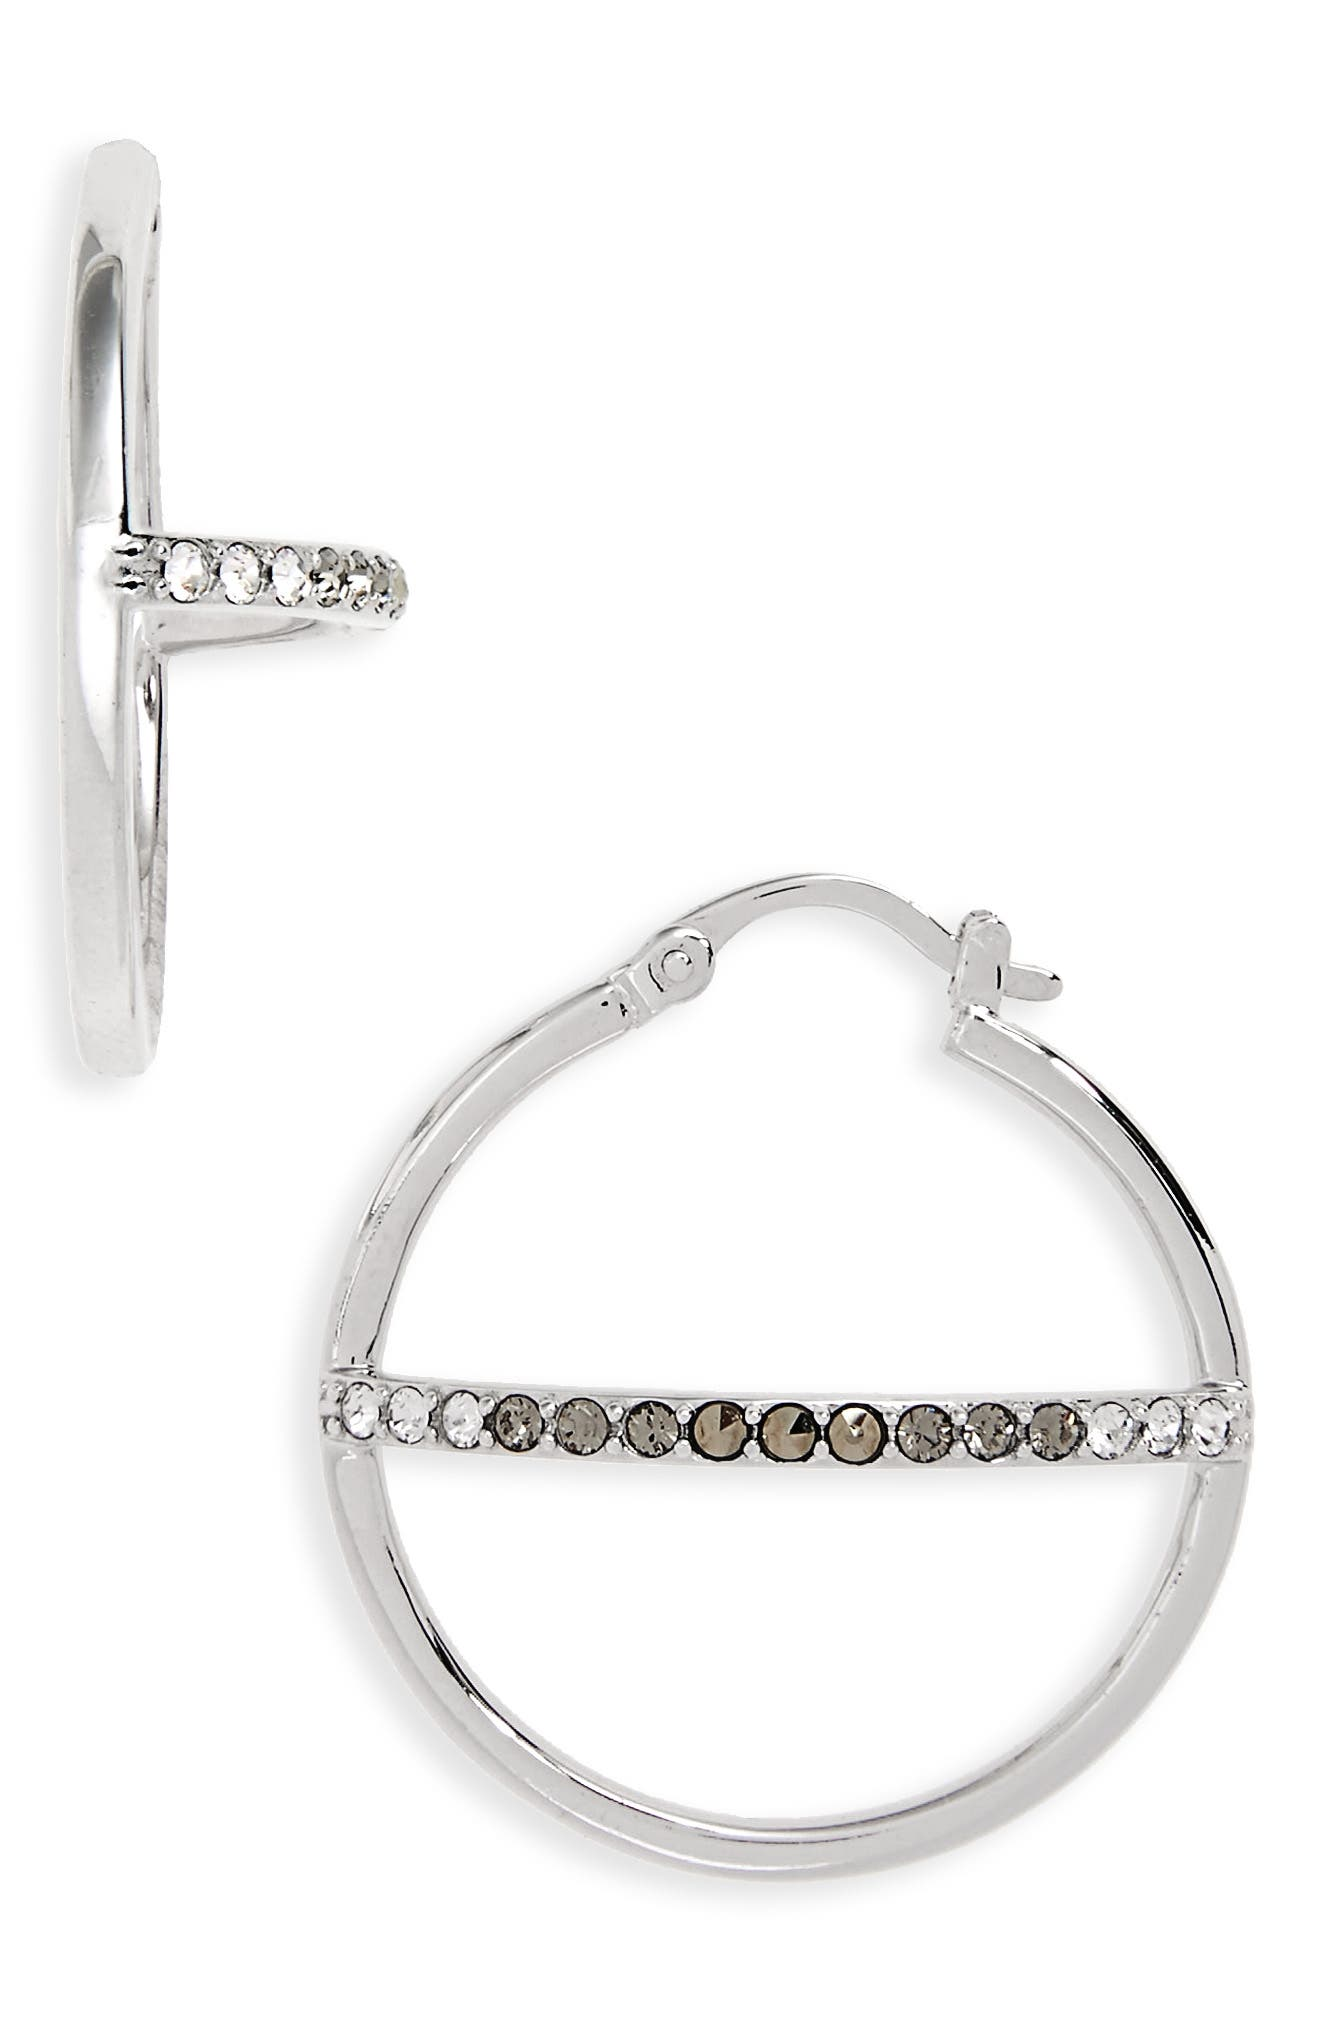 Main Image - Judith Jack Silver Sparkle Hoop Earrings